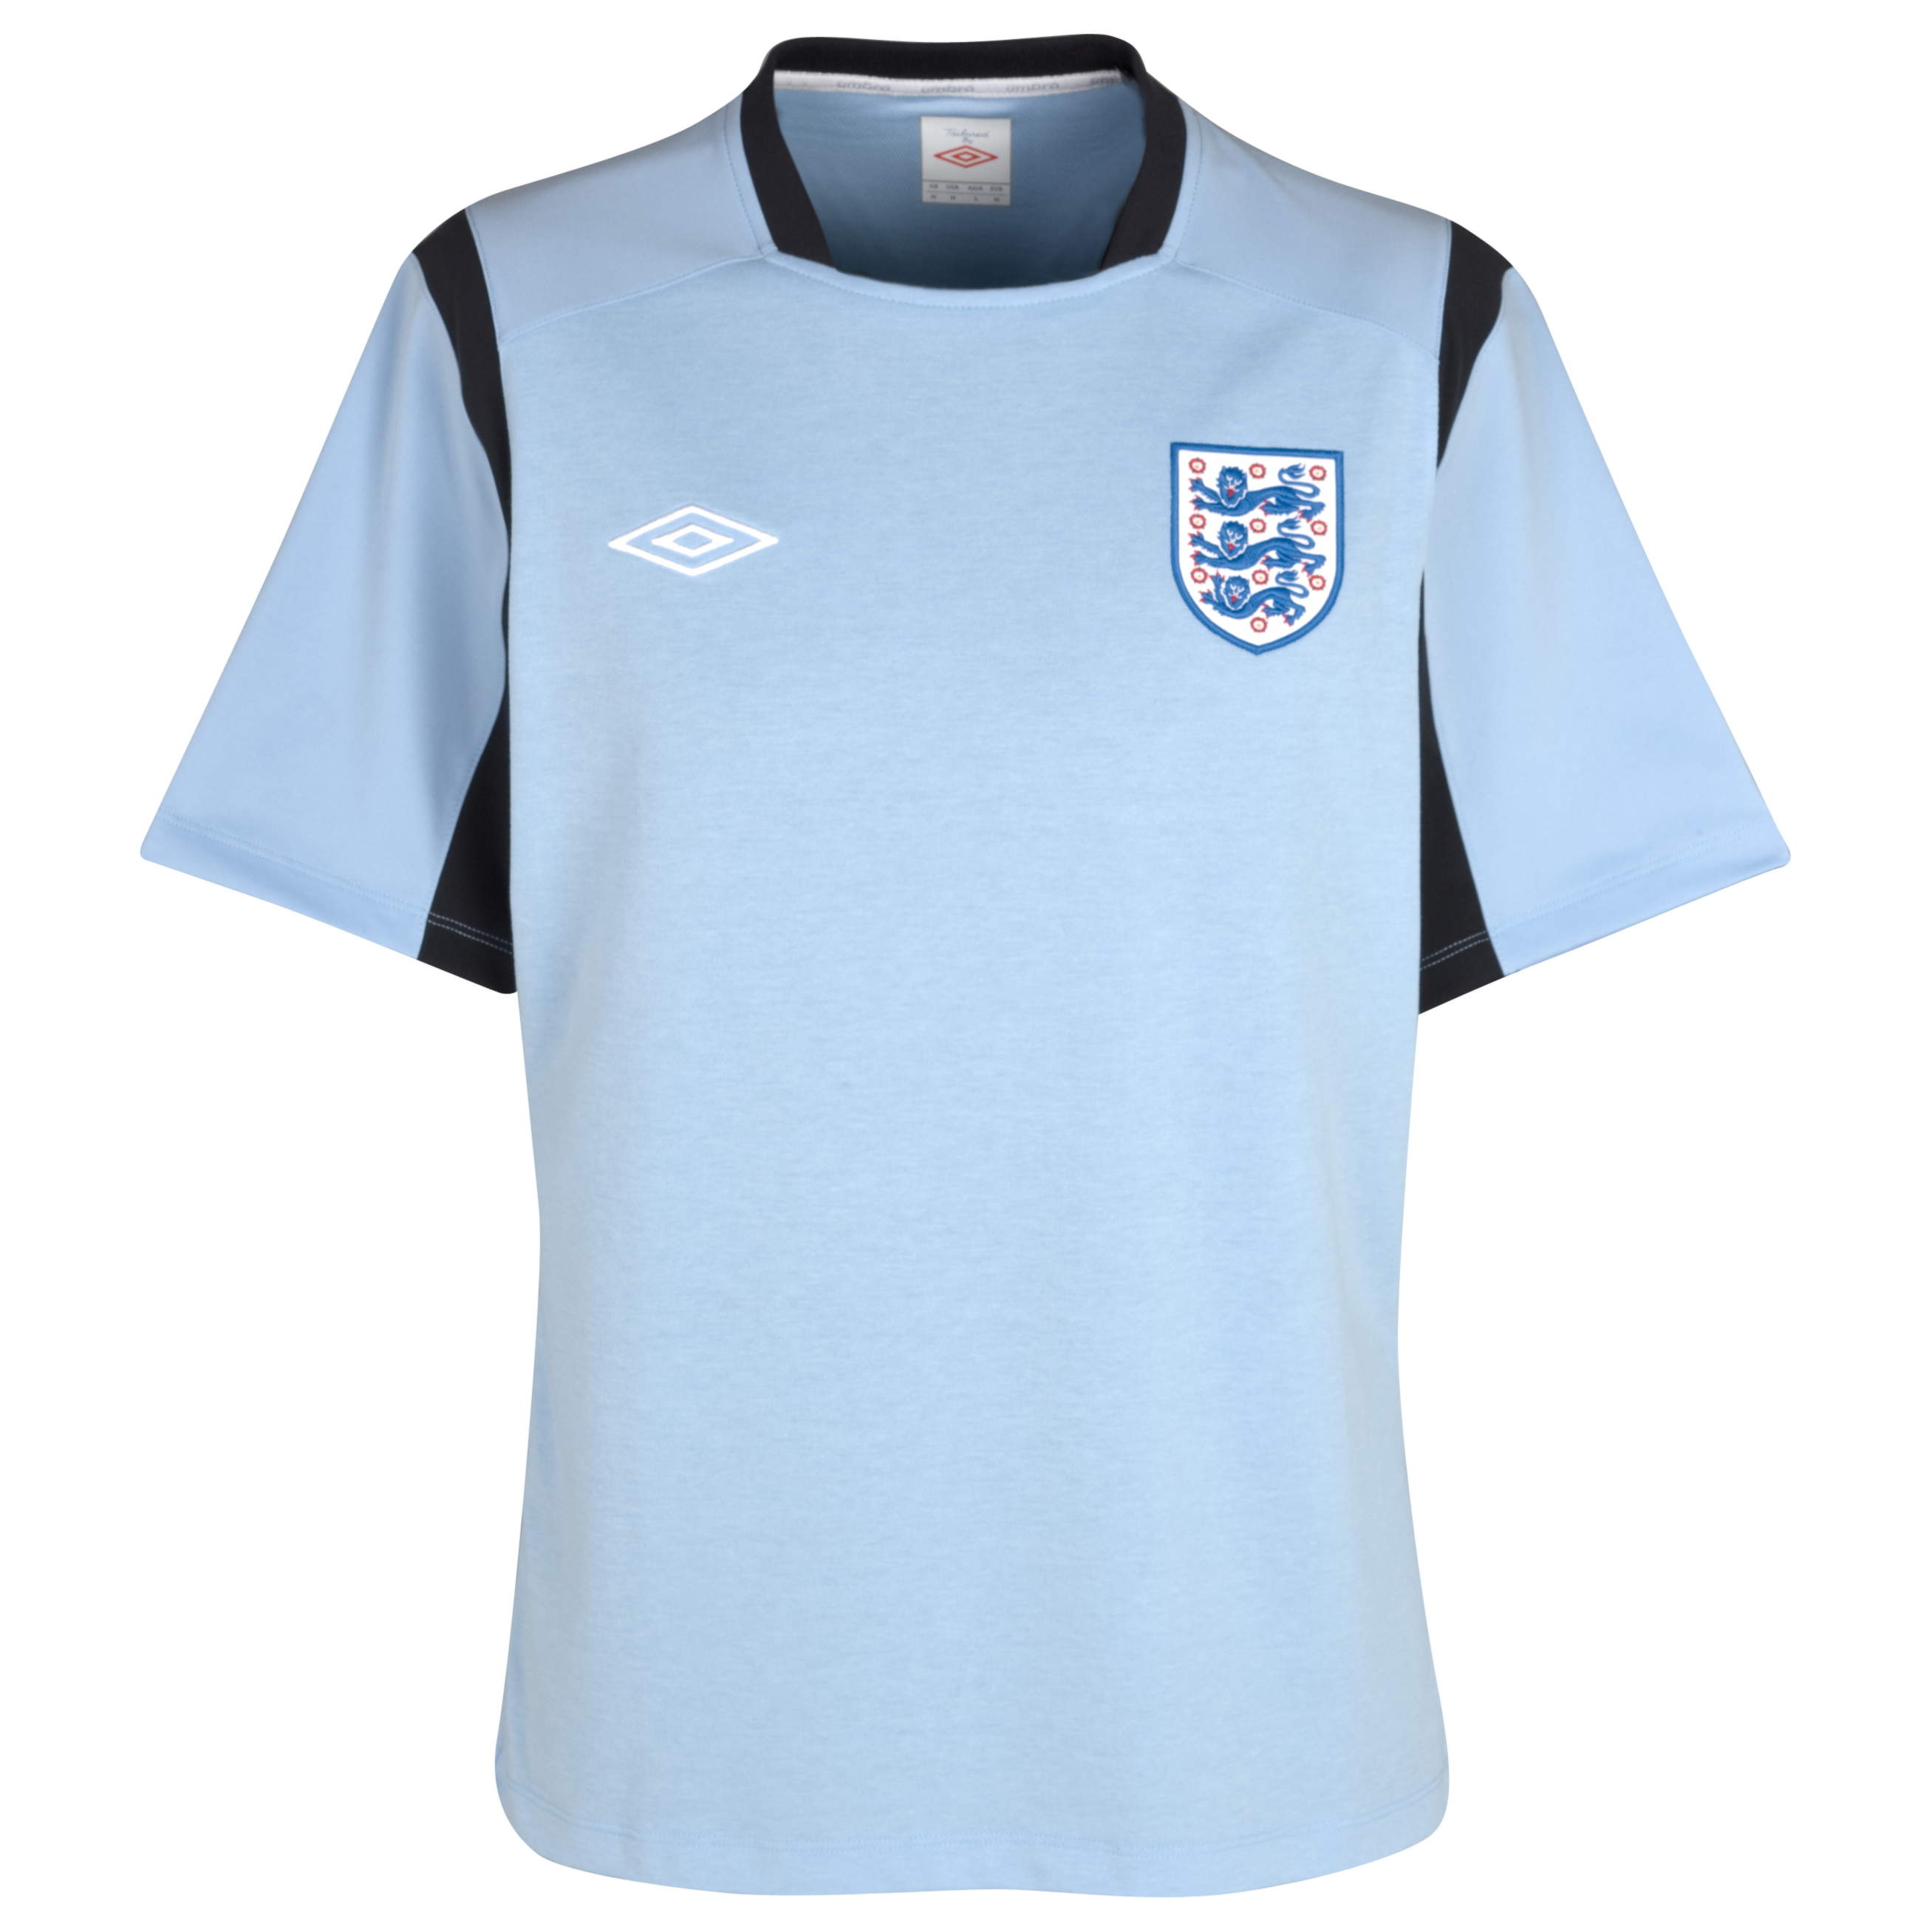 England Matchday Jersey - Blue Powder/Regatta - Kids